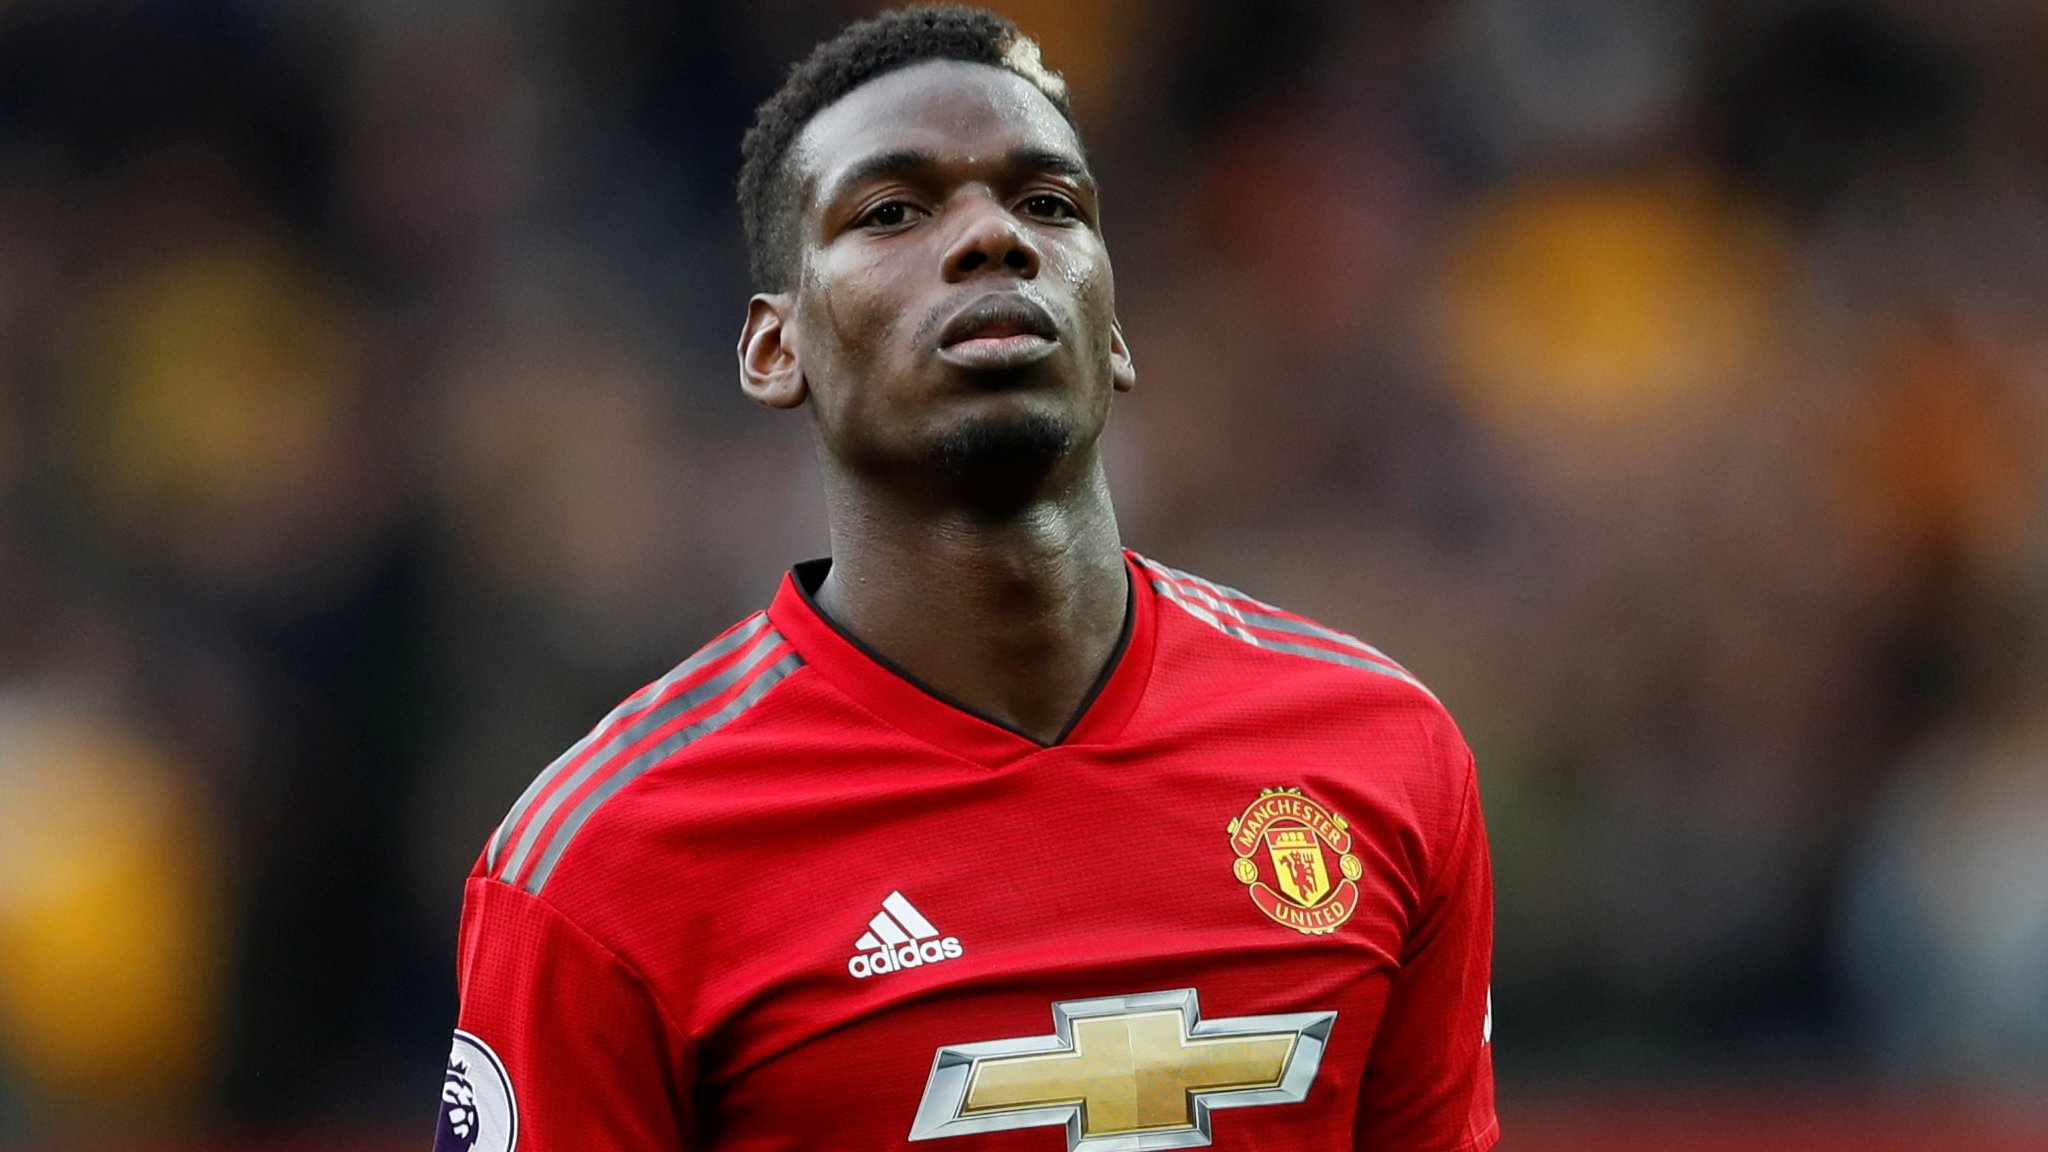 'No fallout, no problem' - but Pogba will not captain Man Utd again